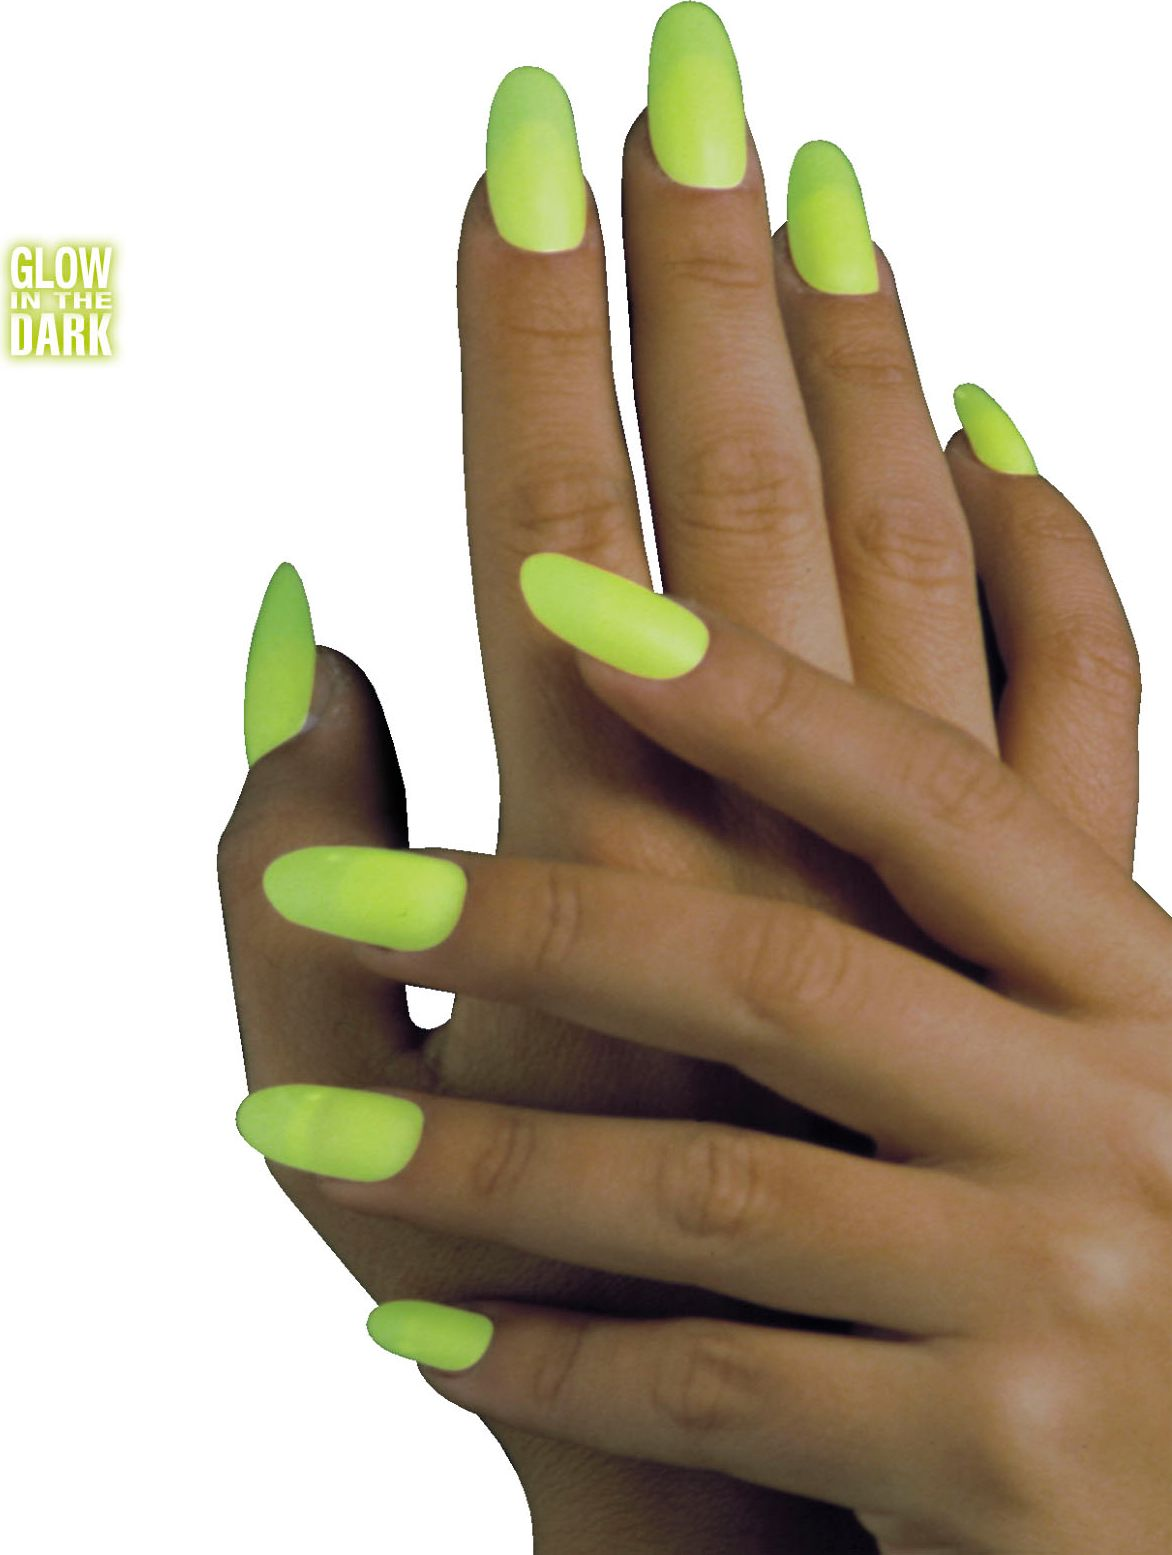 Glow in the dark nagels 15 stuks